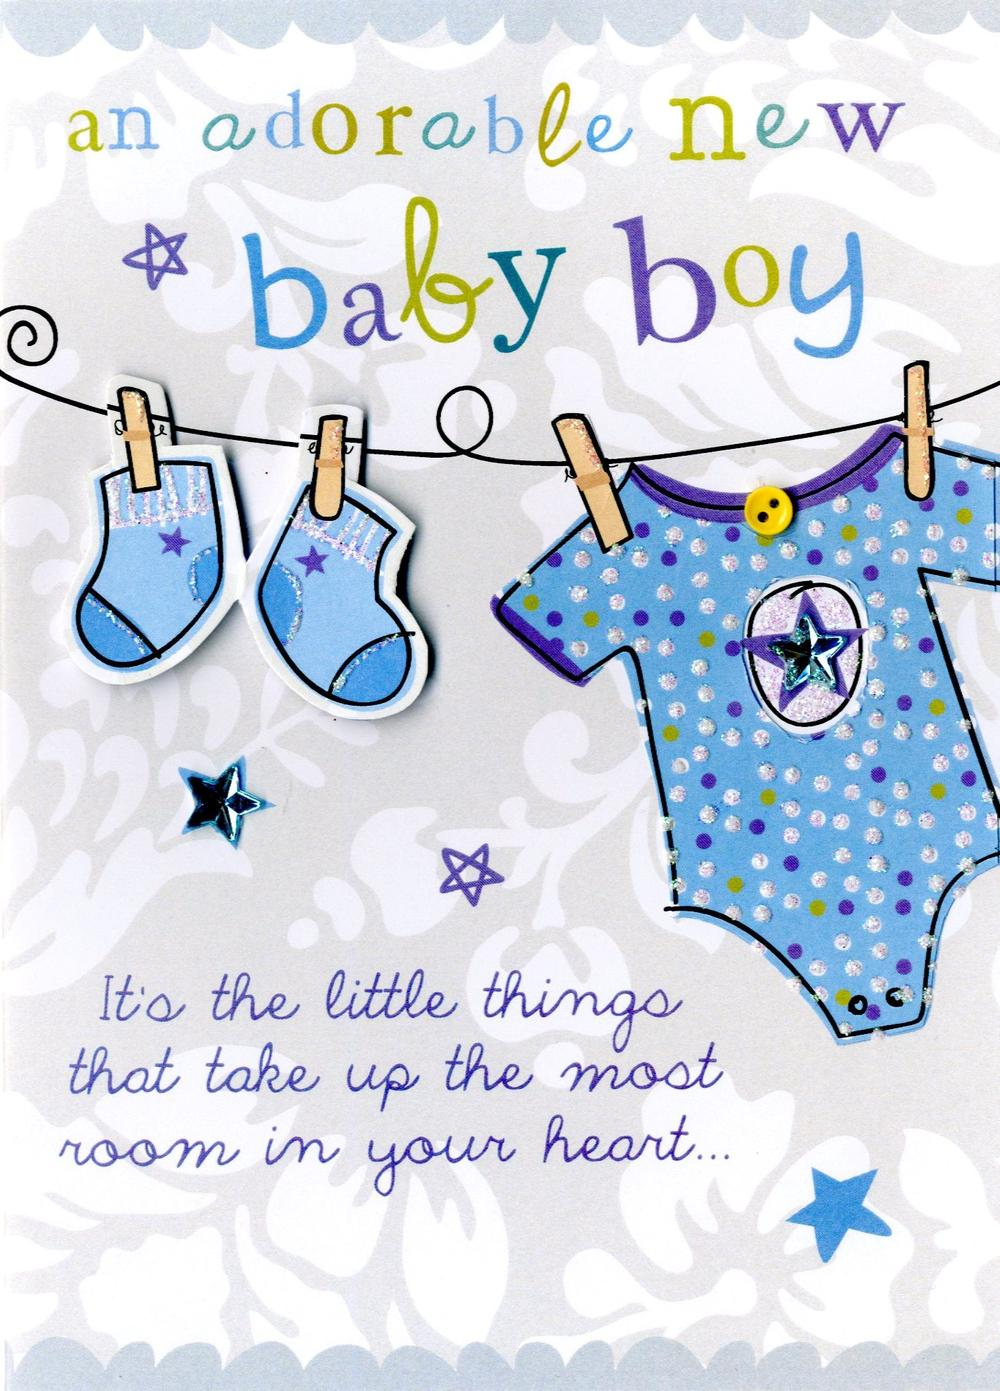 New baby boy greeting card cards love kates new baby boy greeting card m4hsunfo